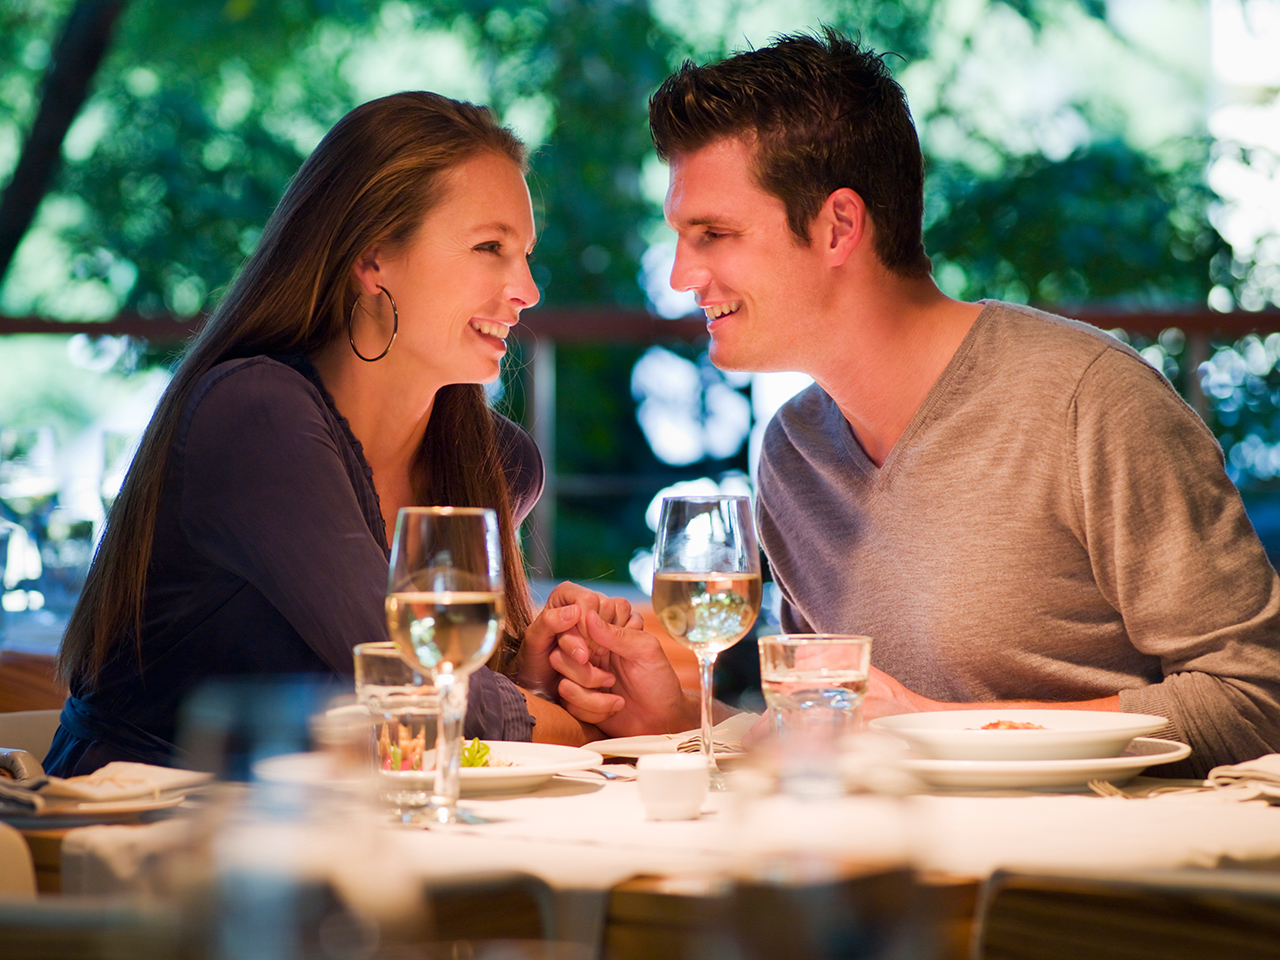 Be lovers': Norway politician urges parents to schedule date nights